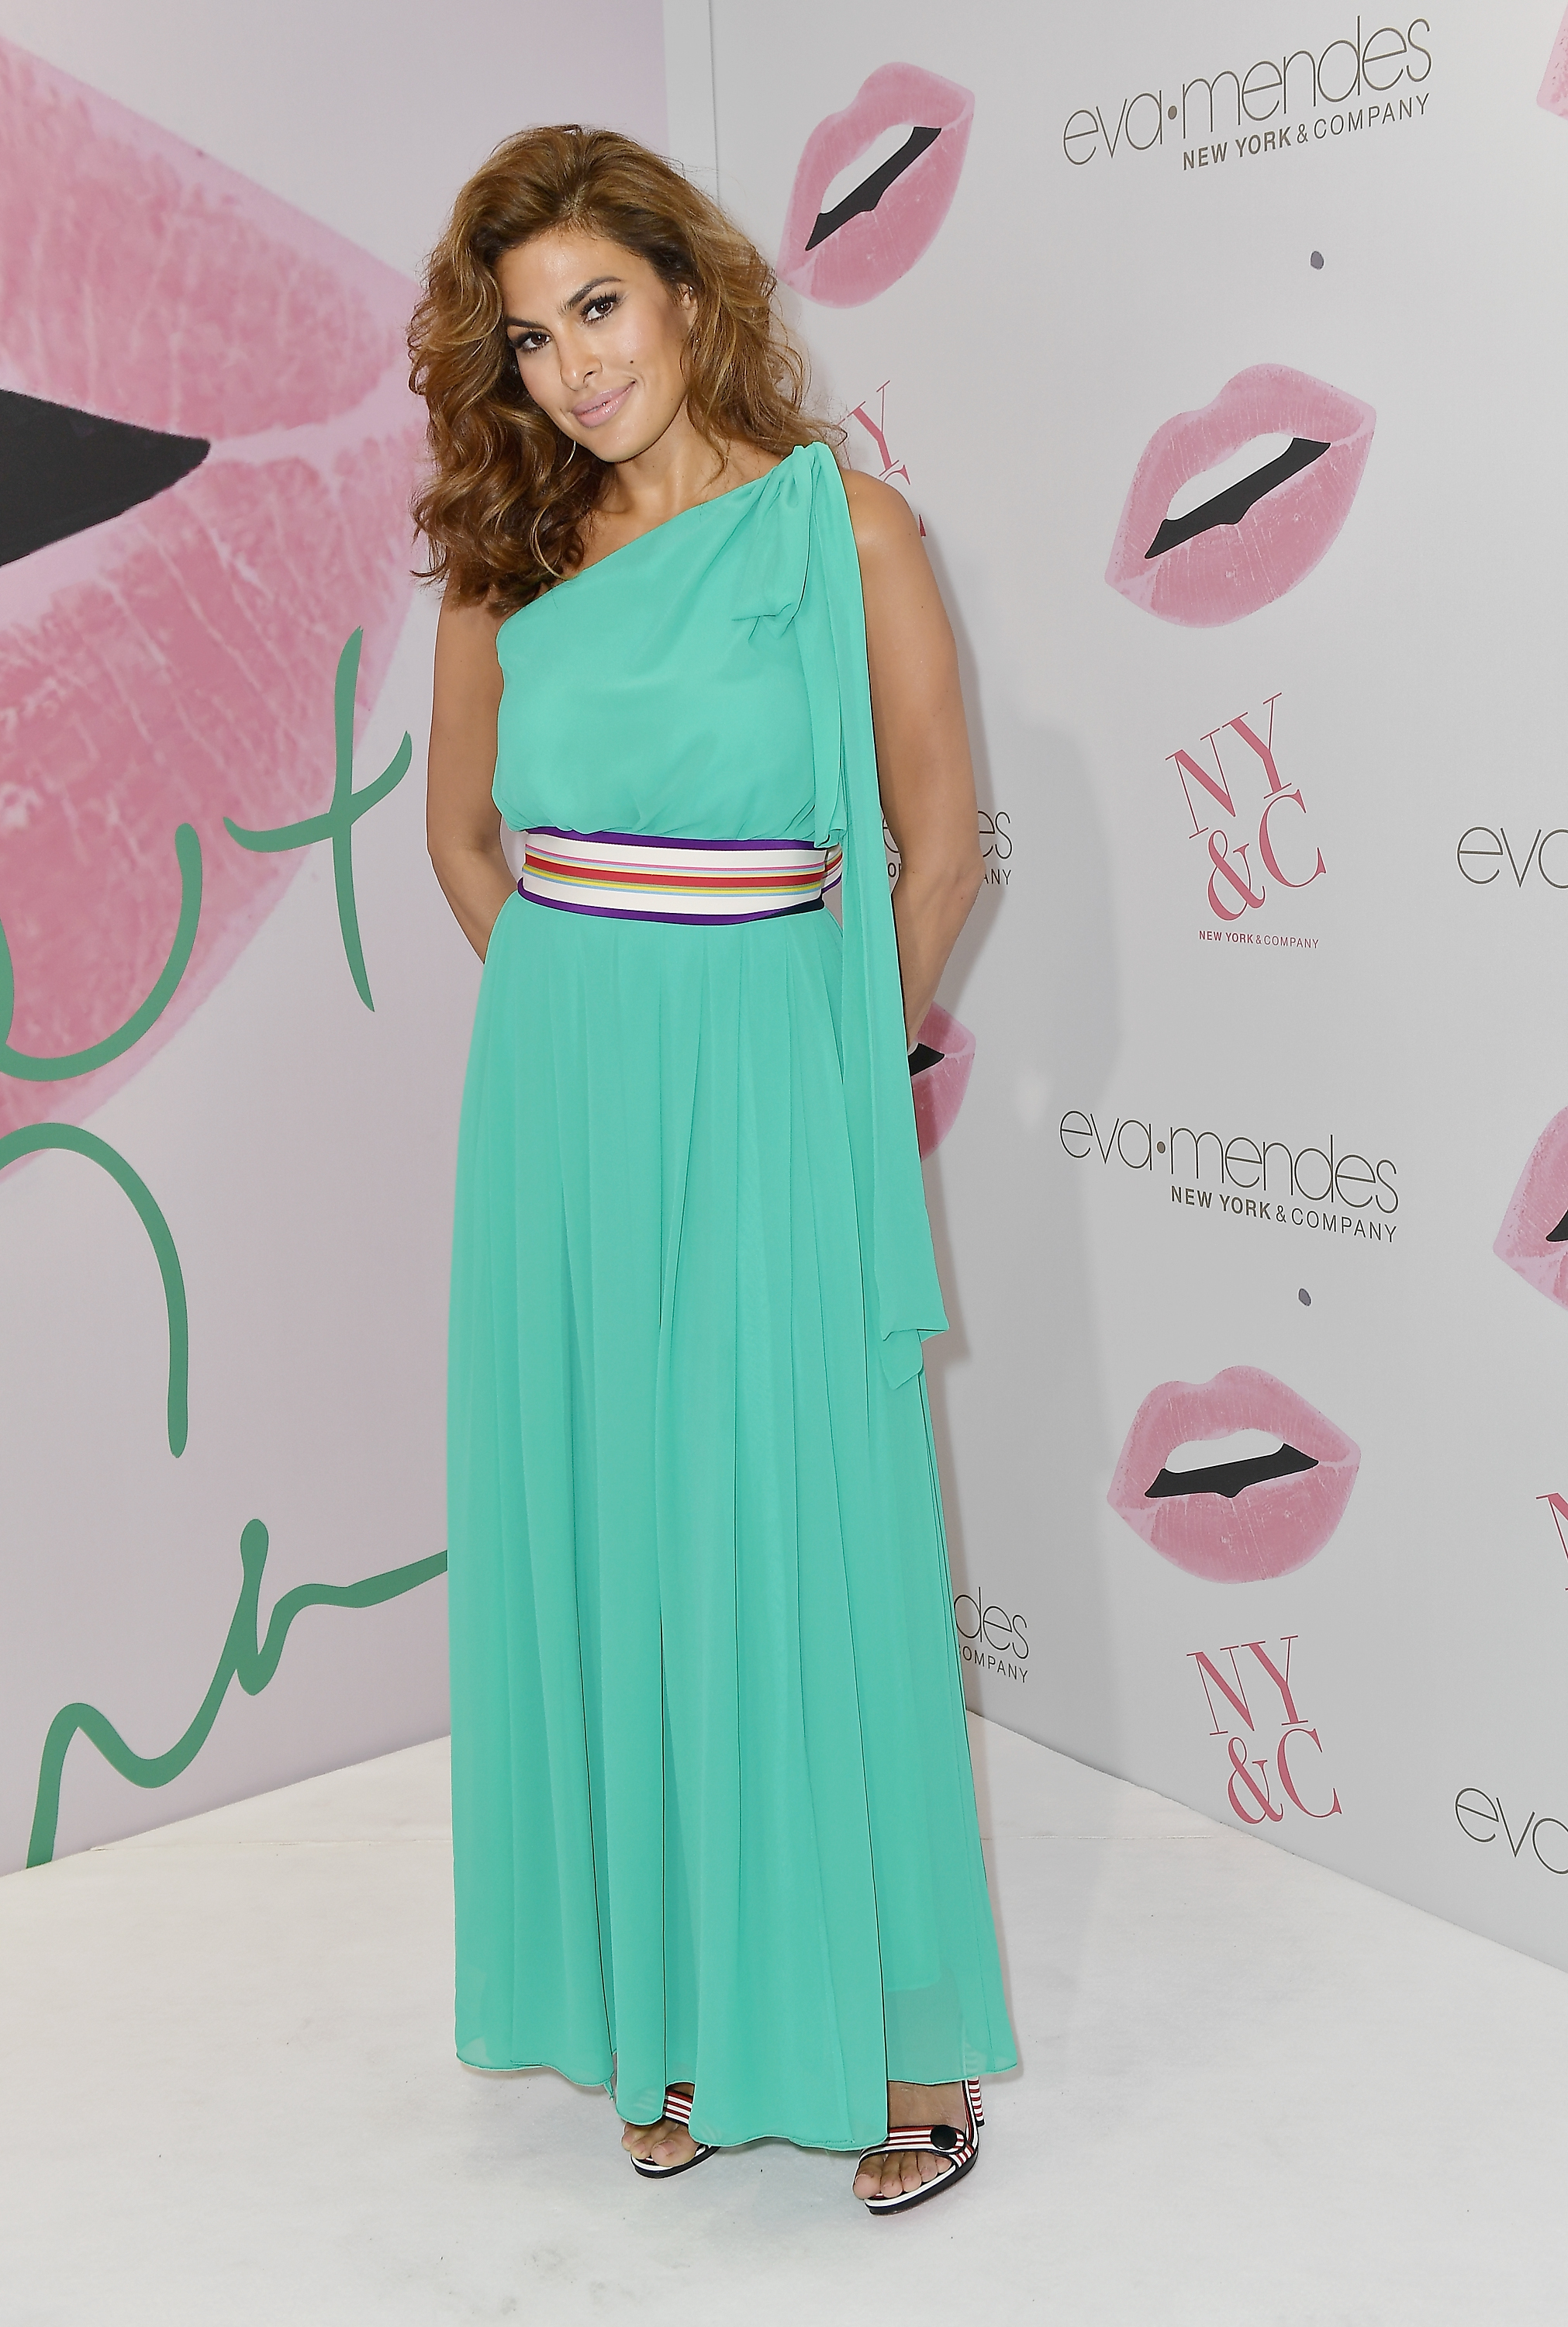 Eva Mendes attends the grand opening of New York & Company Miami store and the debut of her new collection in Miami on March 16, 2017.